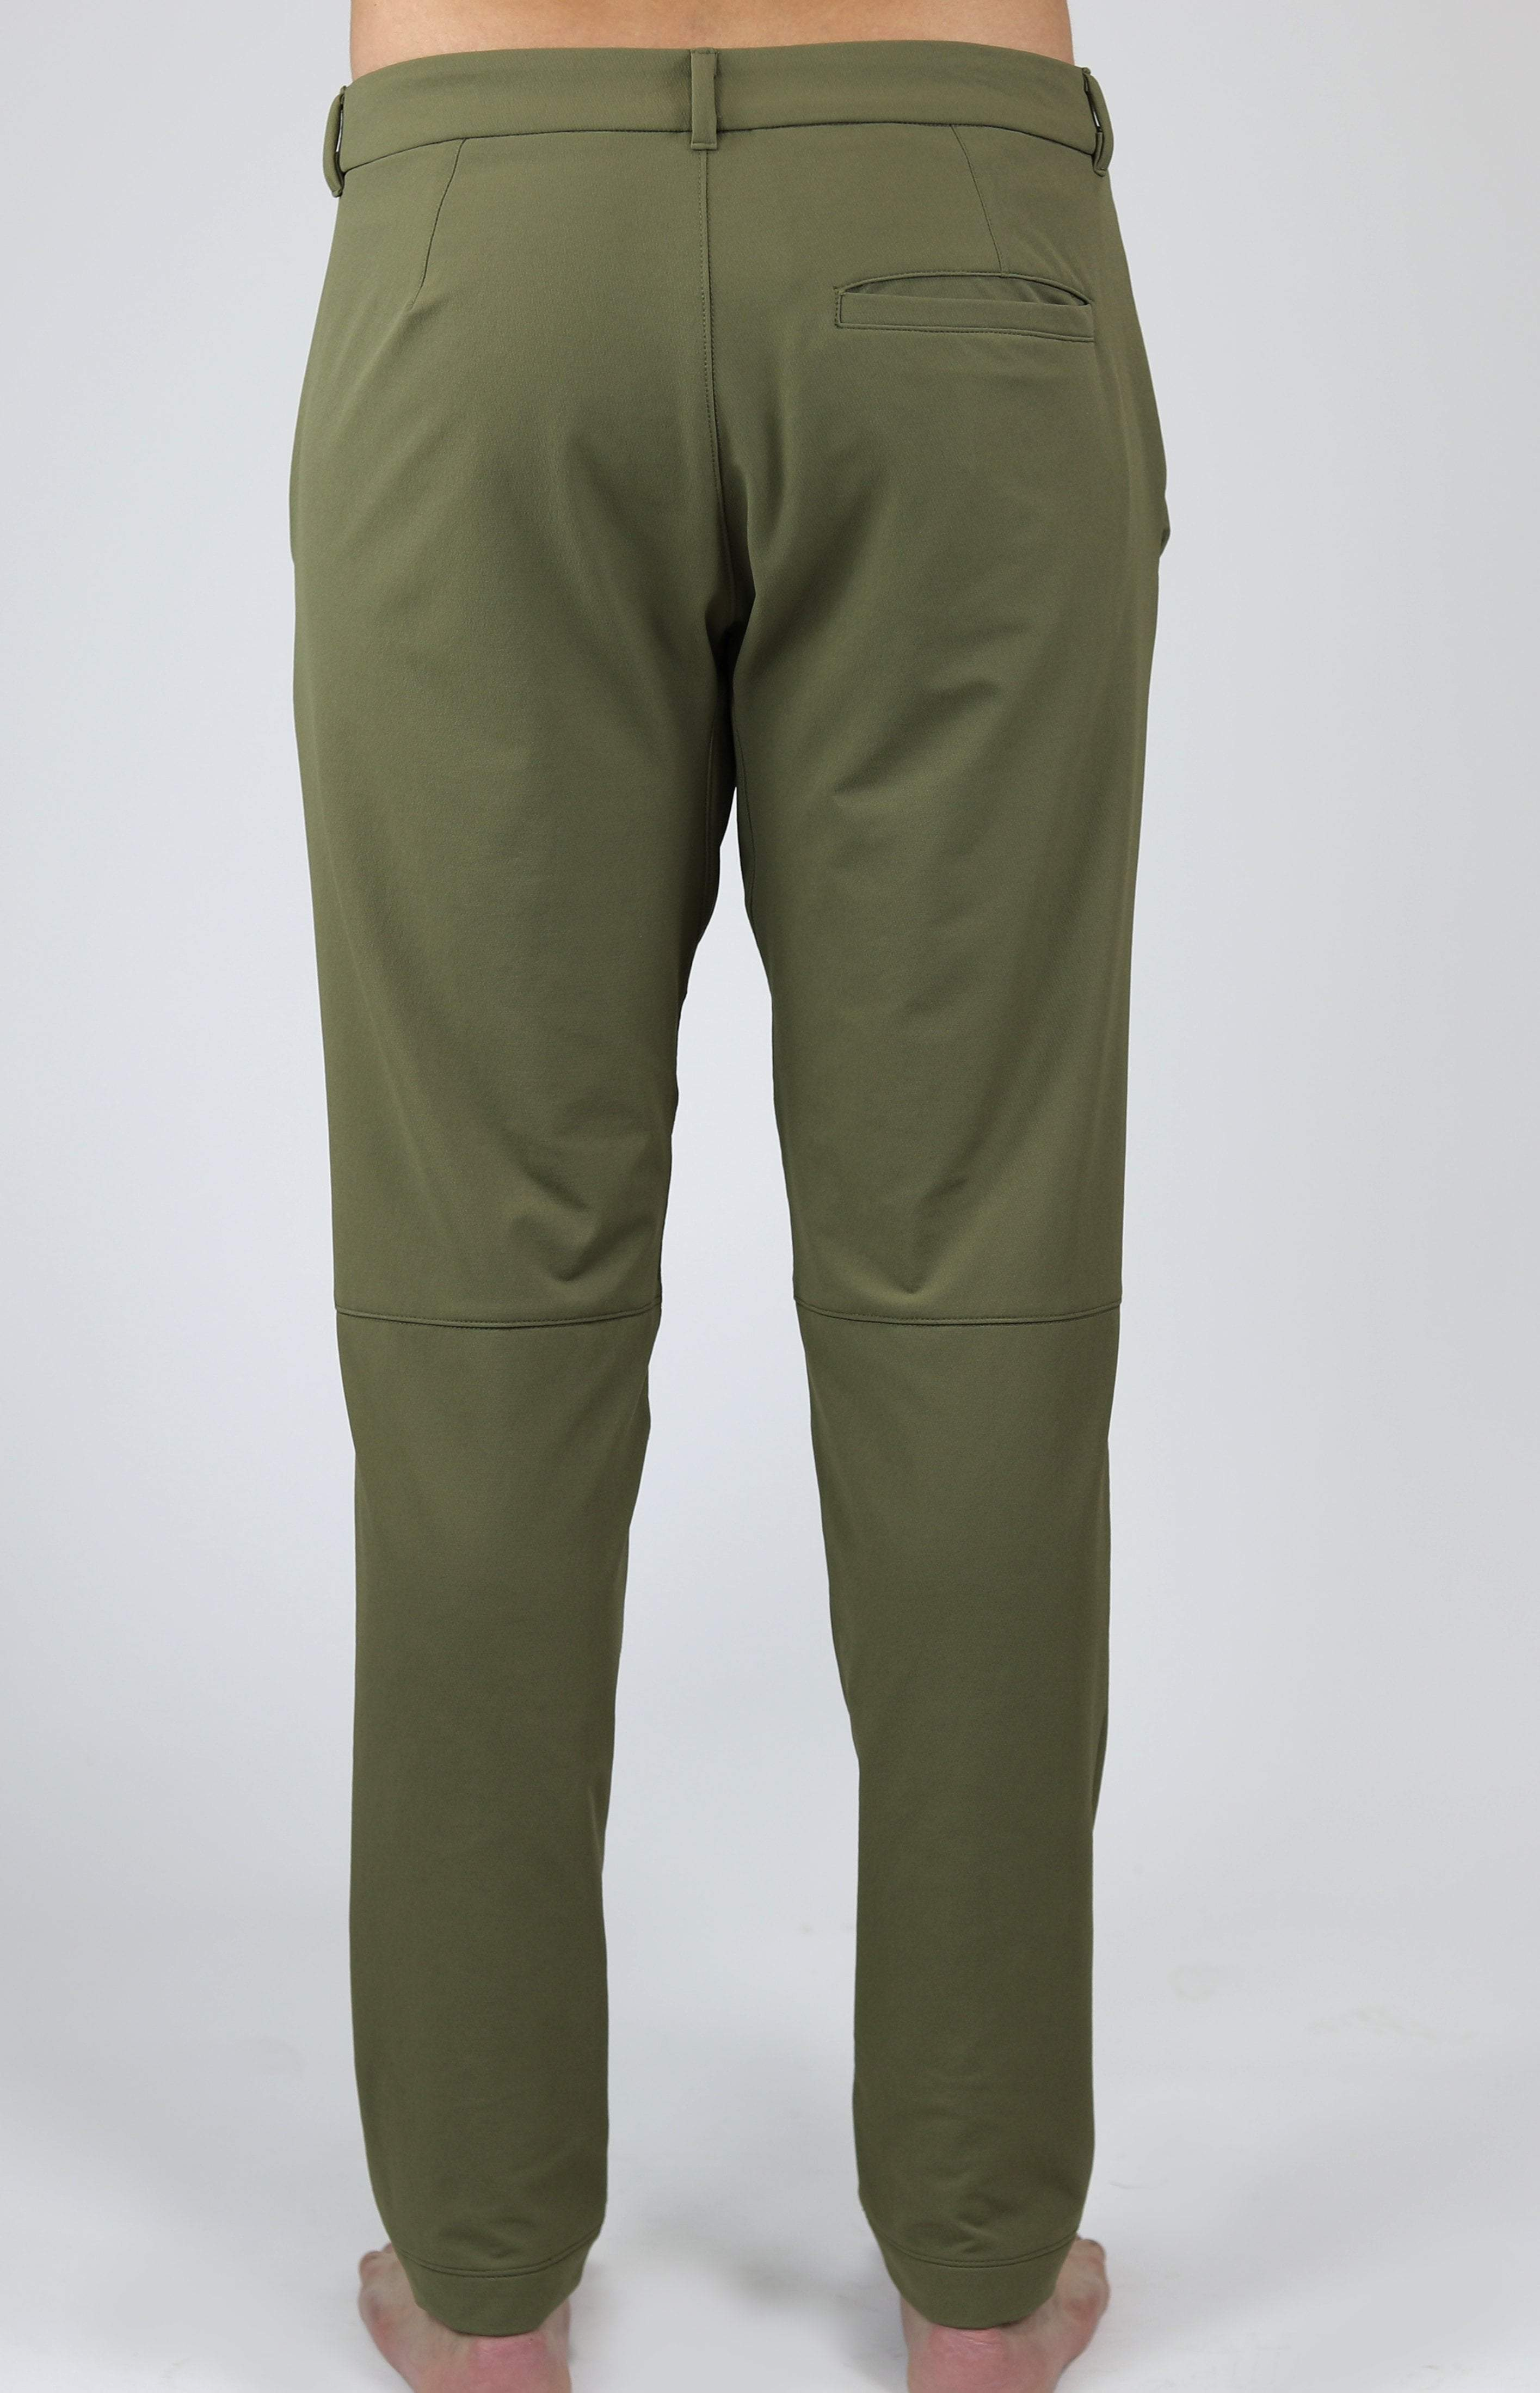 PRESALE - The Action Pant